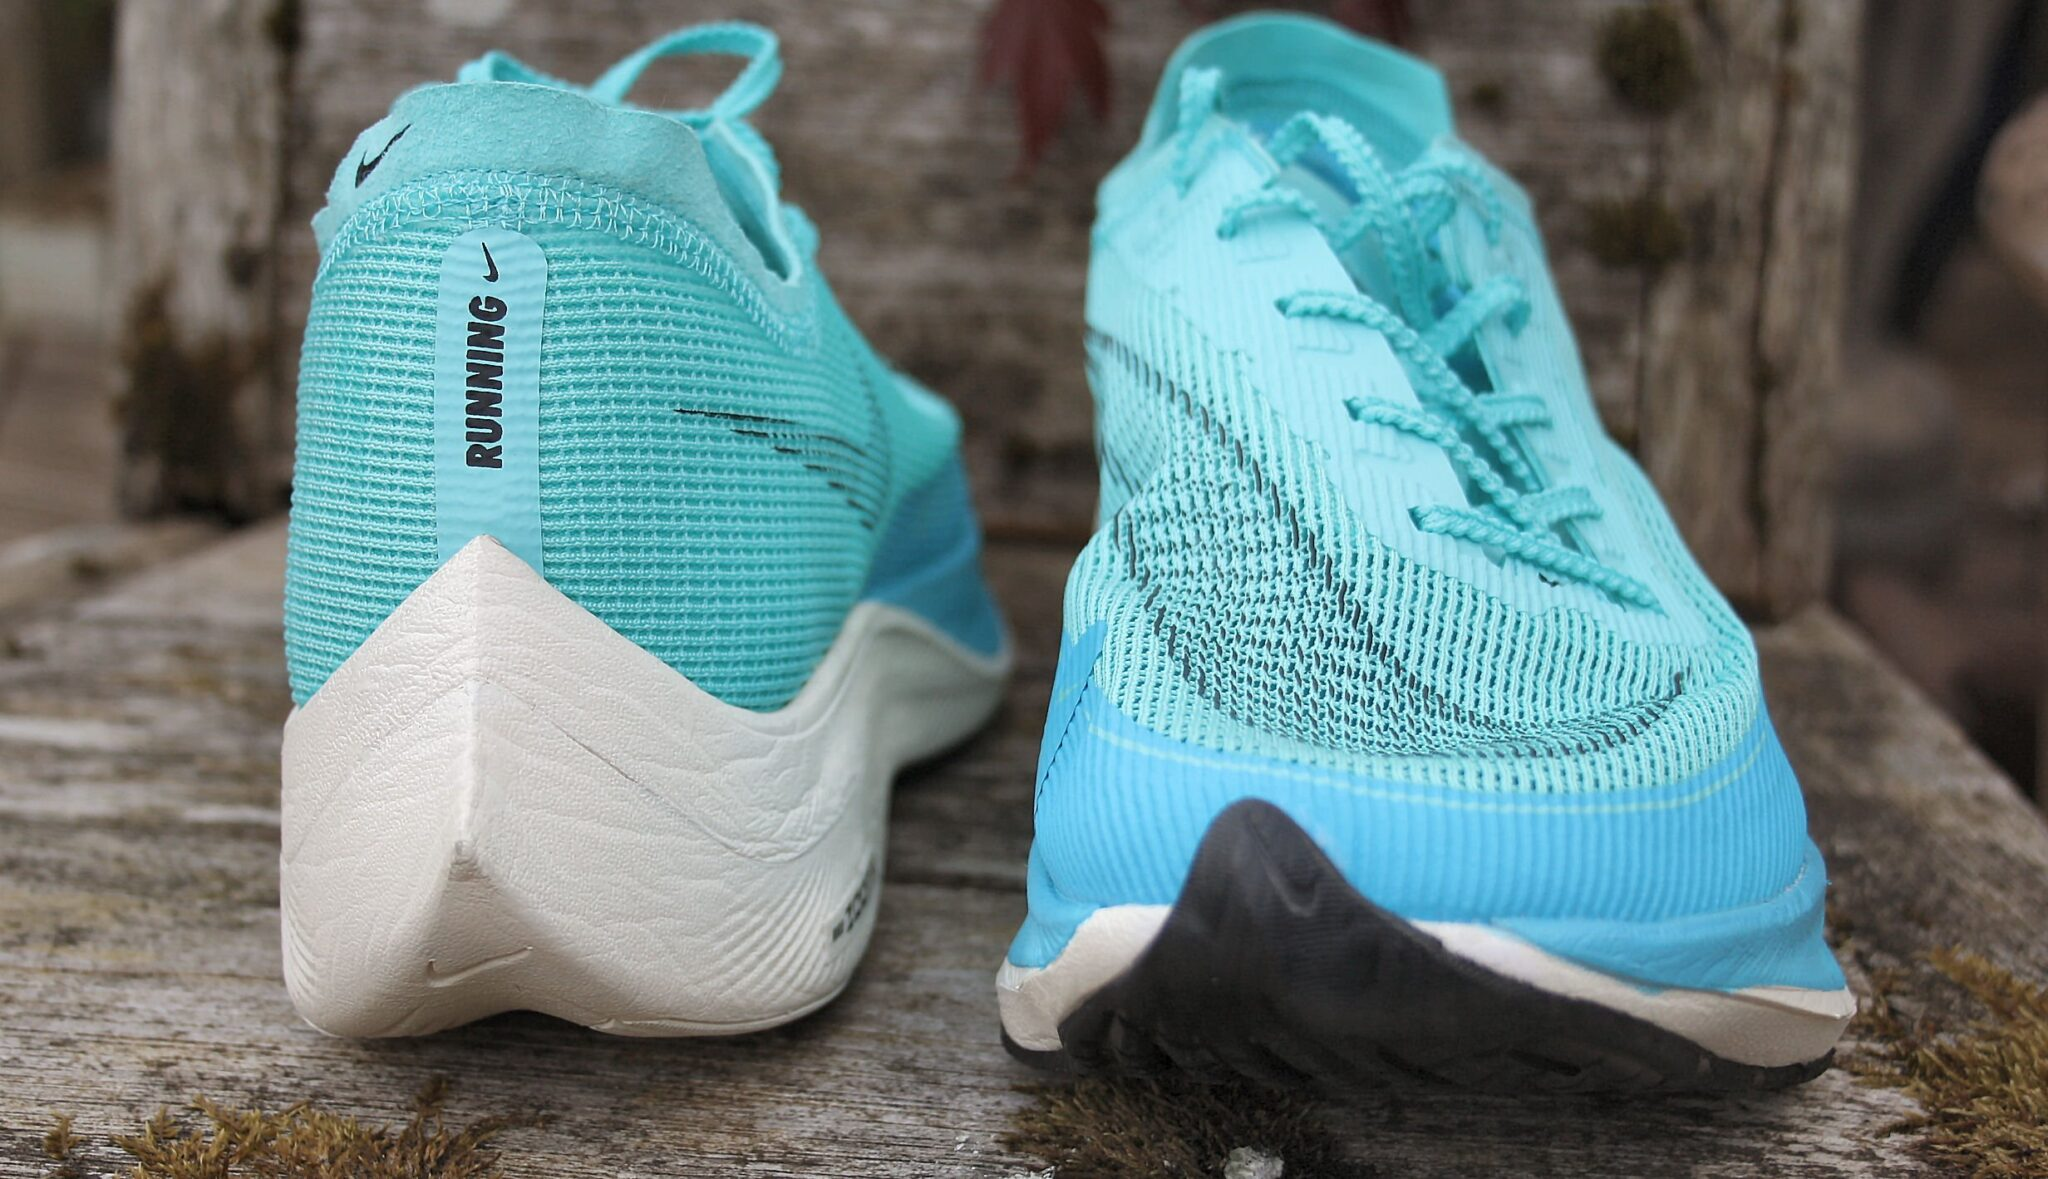 Nike ZoomX toe and heel view in the main part of the review for the Vaporfly Next% 2